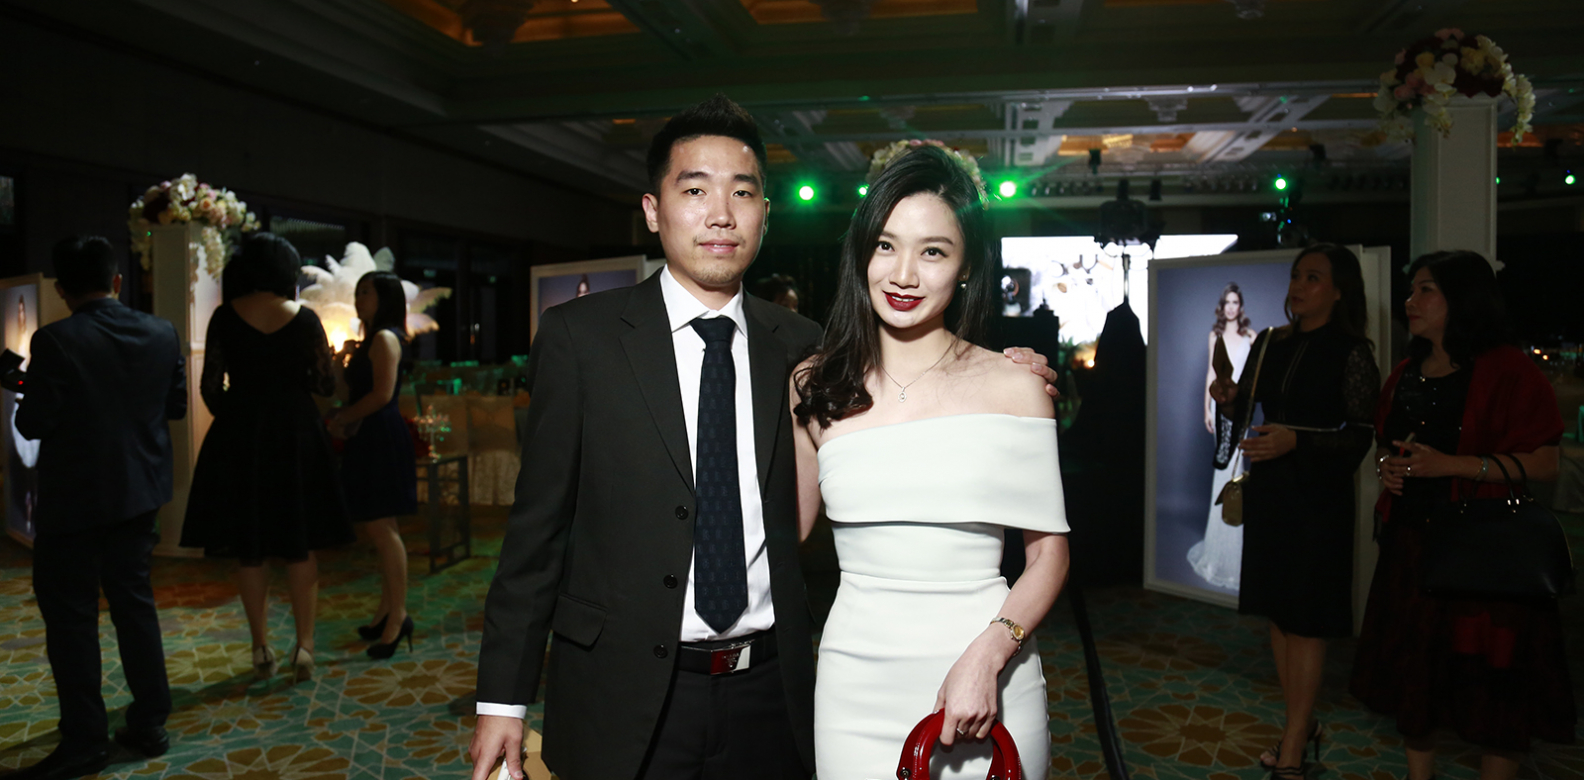 Kok Liang Jin and Beatrice Kong